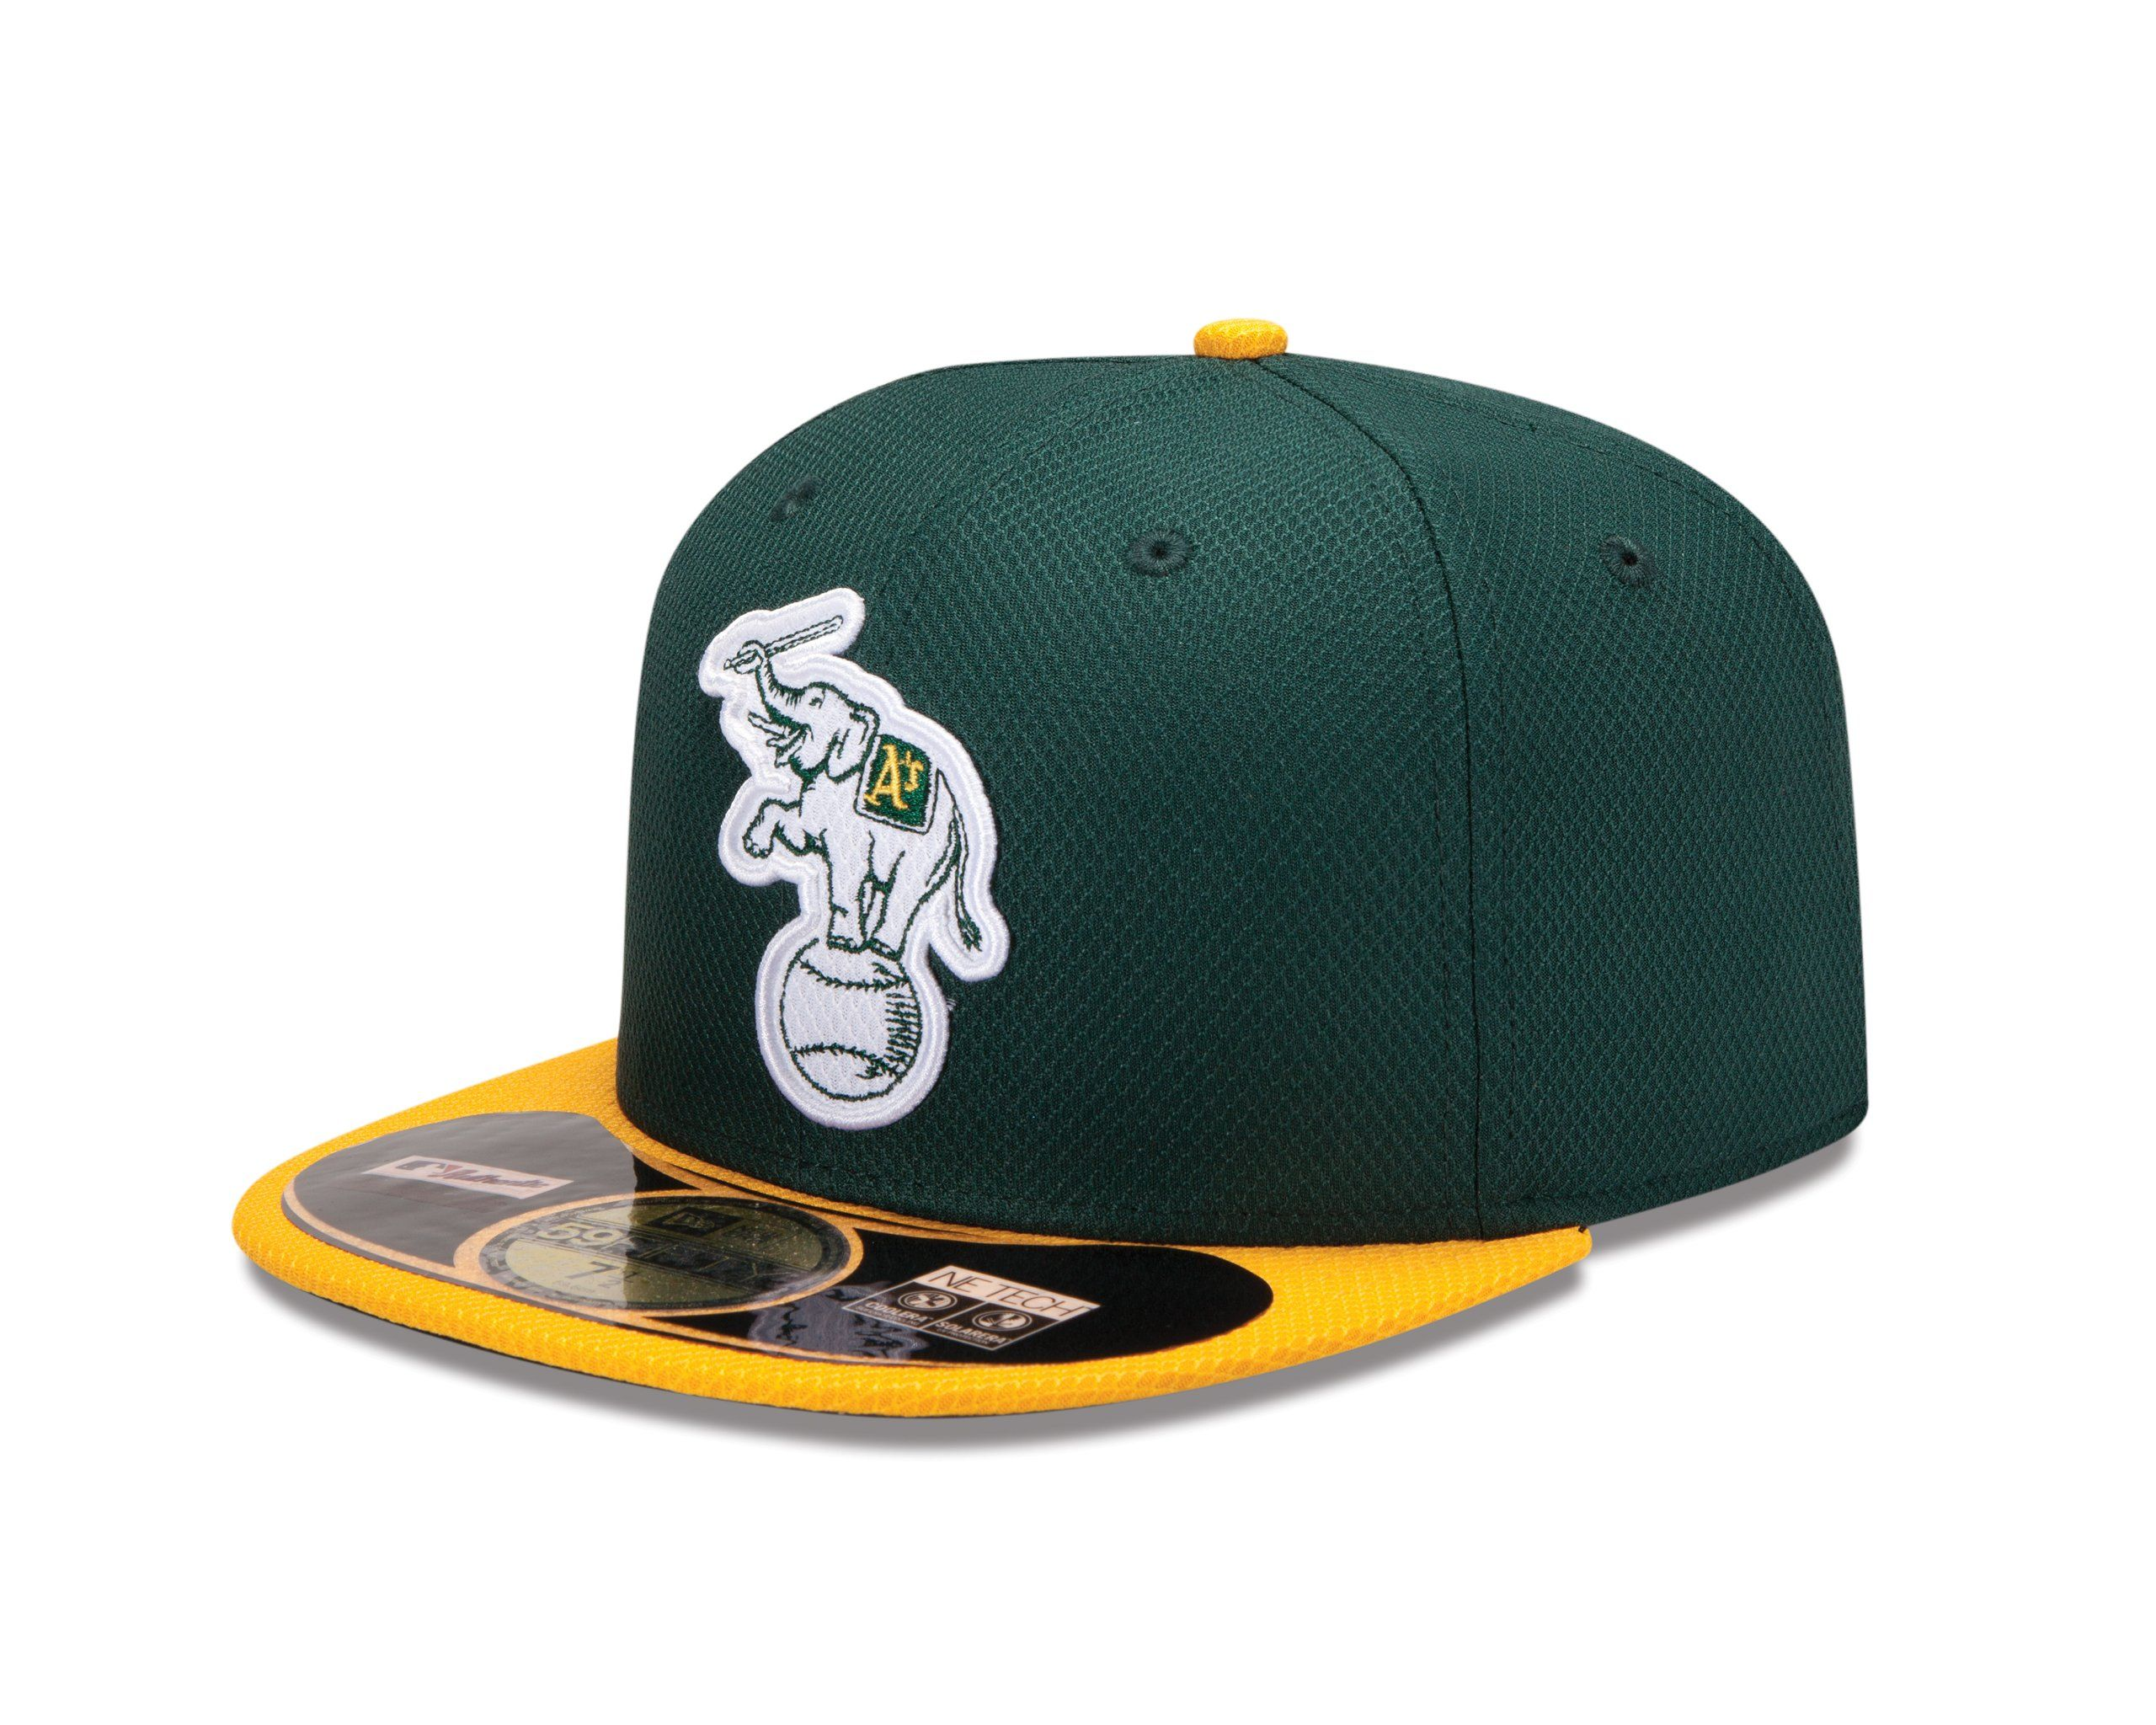 New Era 59Fifty Oakland A s batting practice hat 205165bf4f5a